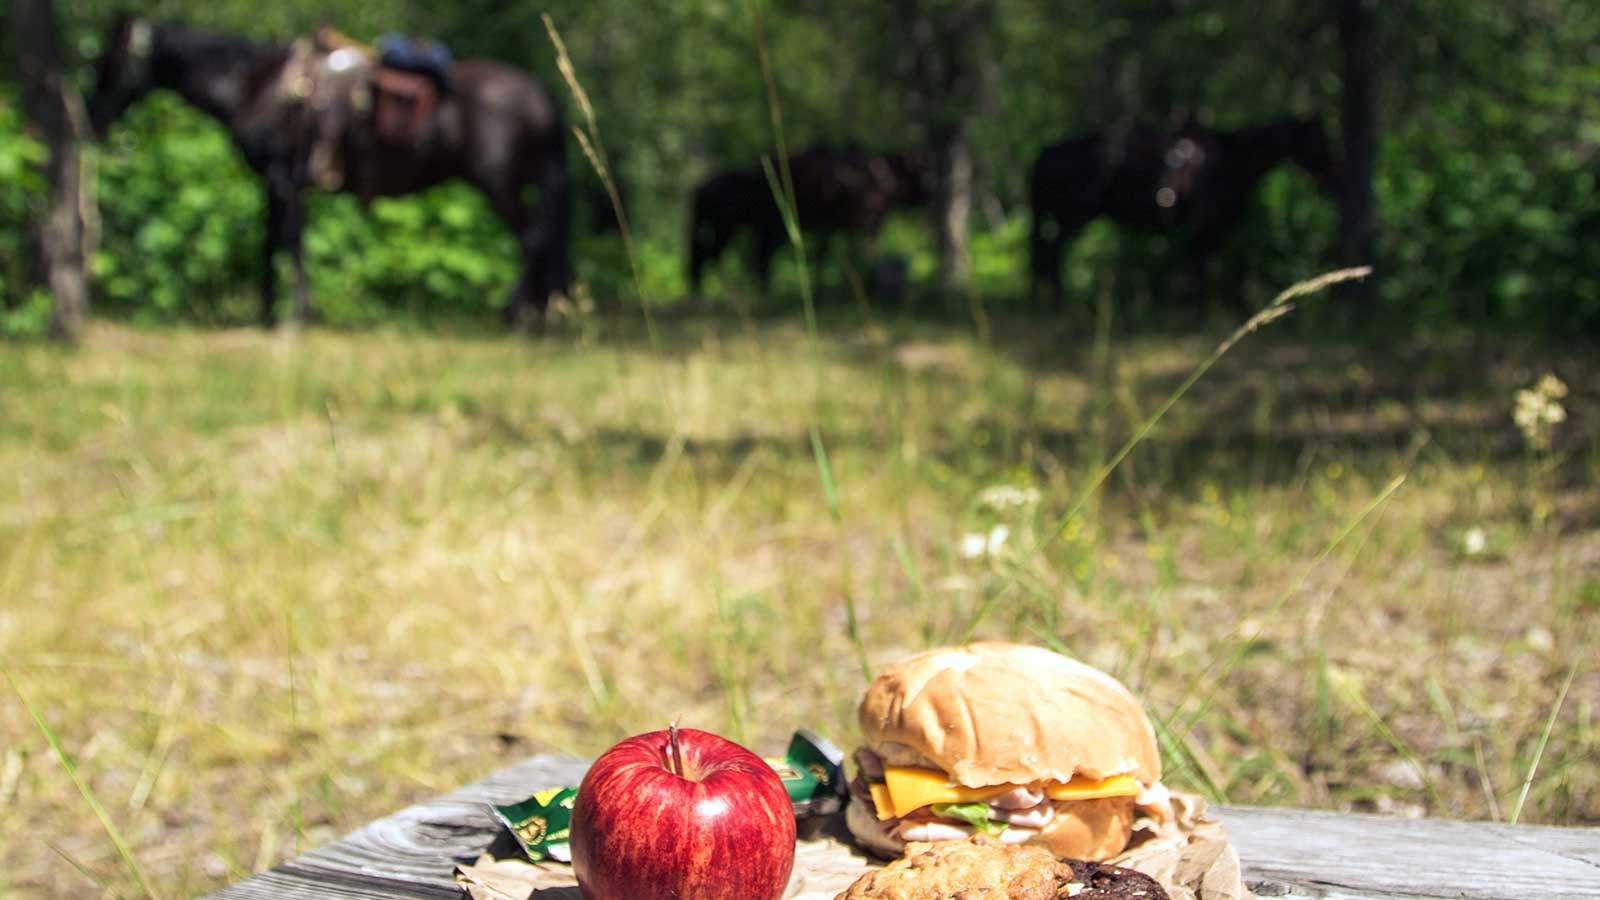 close caption of an apple and sandwich with horses in the background